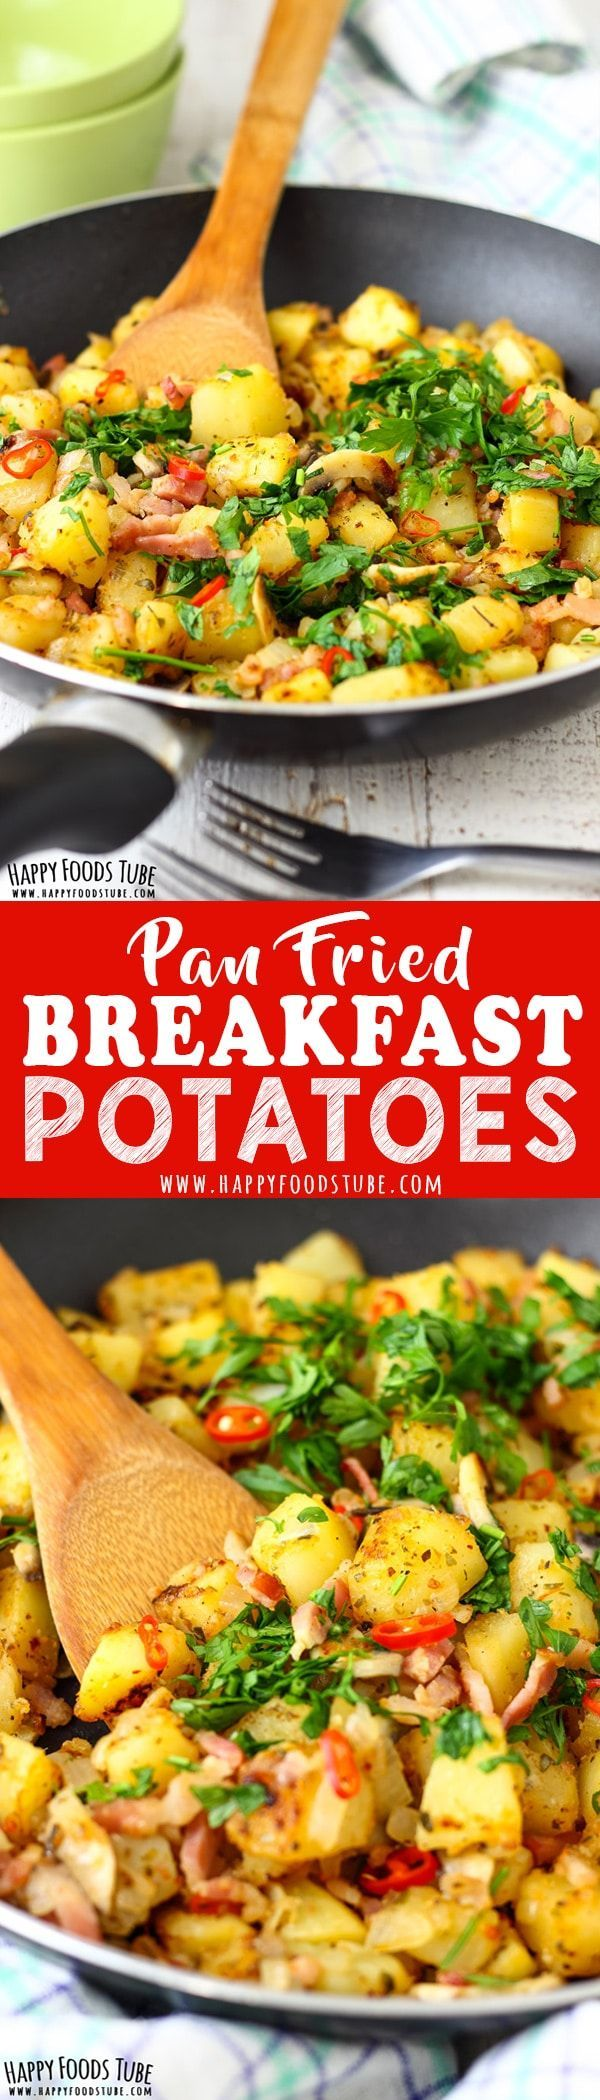 These pan fried breakfast potatoes are quick to make, filling and seasoned to perfection. Potatoes, mushrooms and bacon are turned into a delicious breakfast meal. Crispy pan fried breakfast potatoes recipe. #mealplanning #homecooking #breakfast via @happ